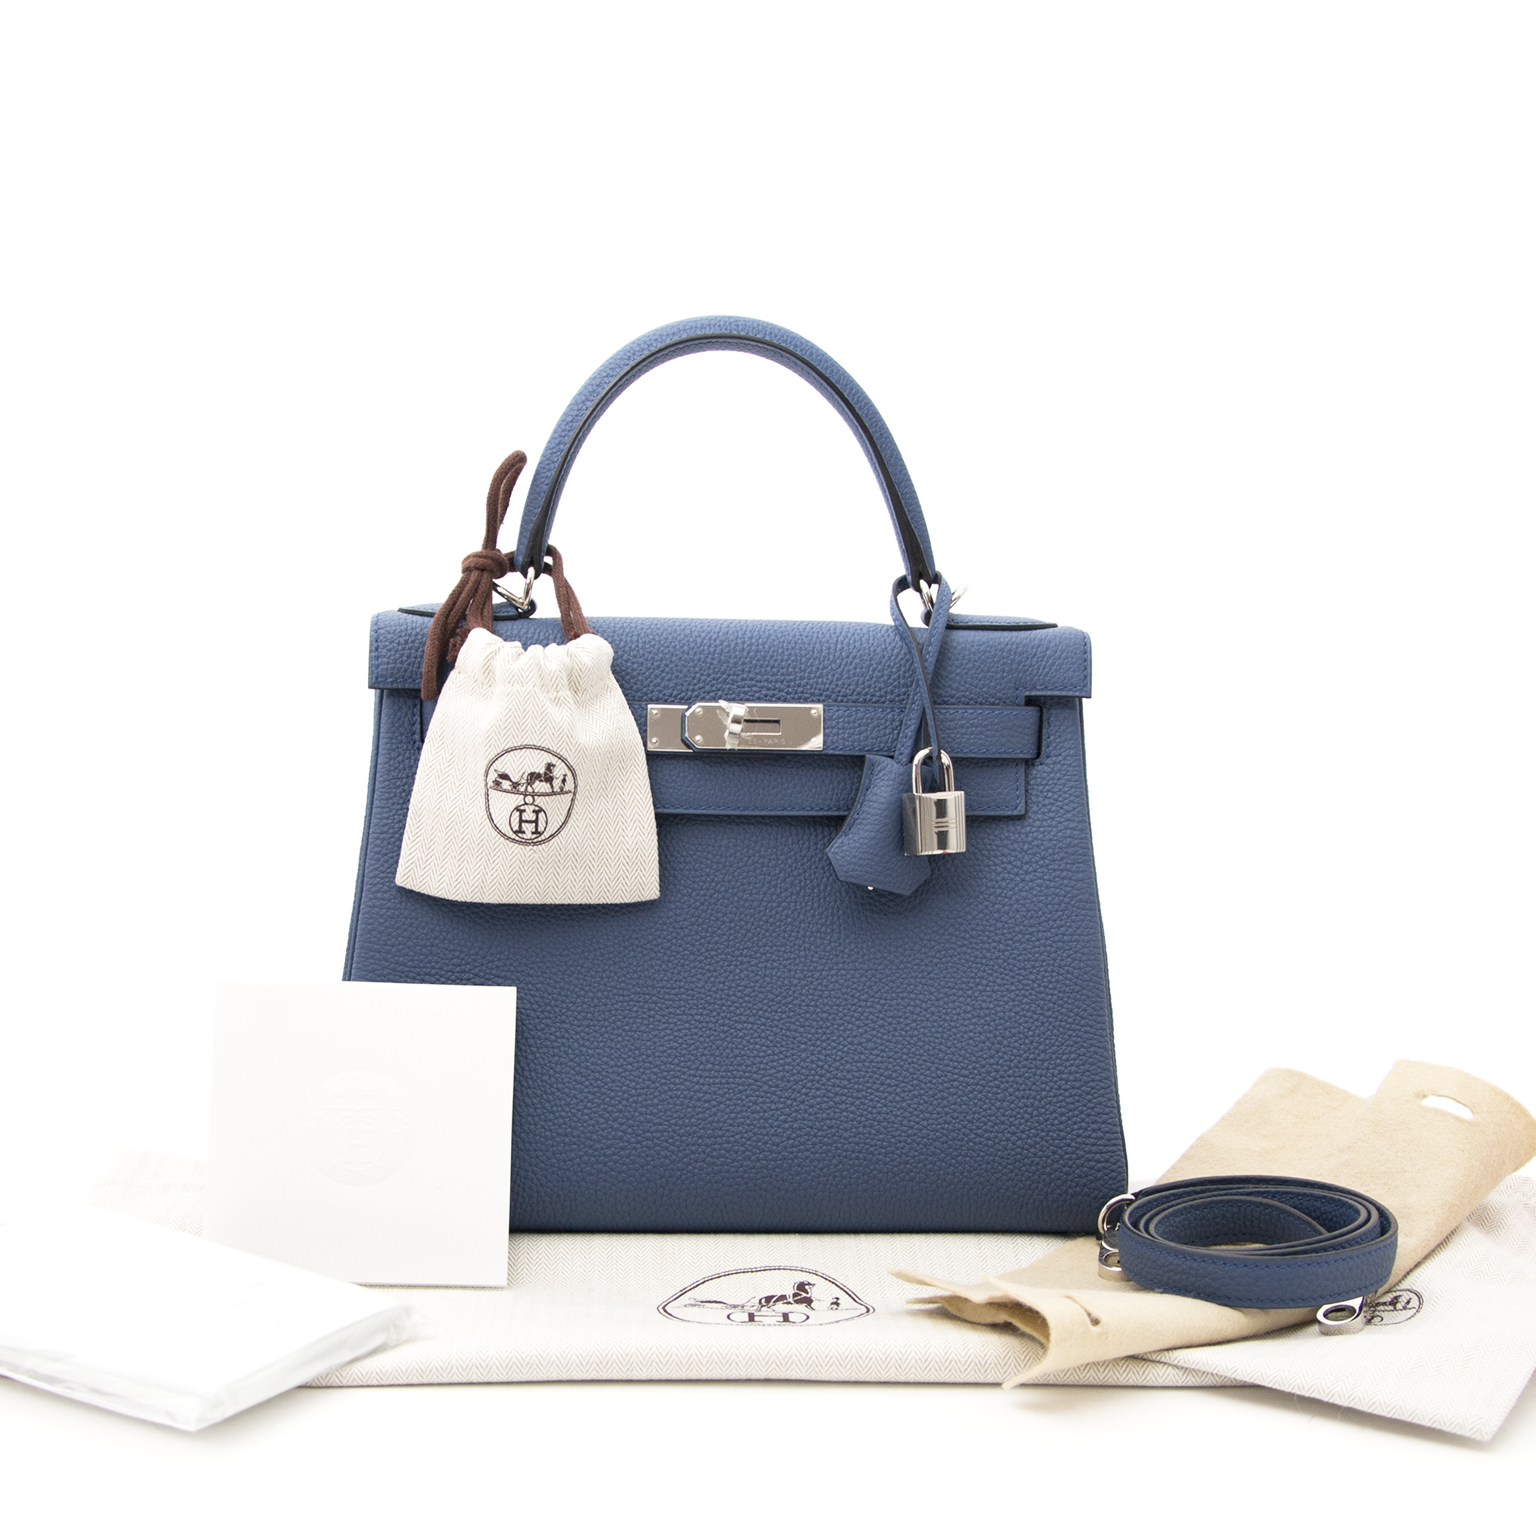 shop safe online your secondhand Brand New Hermes Kelly 28 Bleu Agate Togo PHW